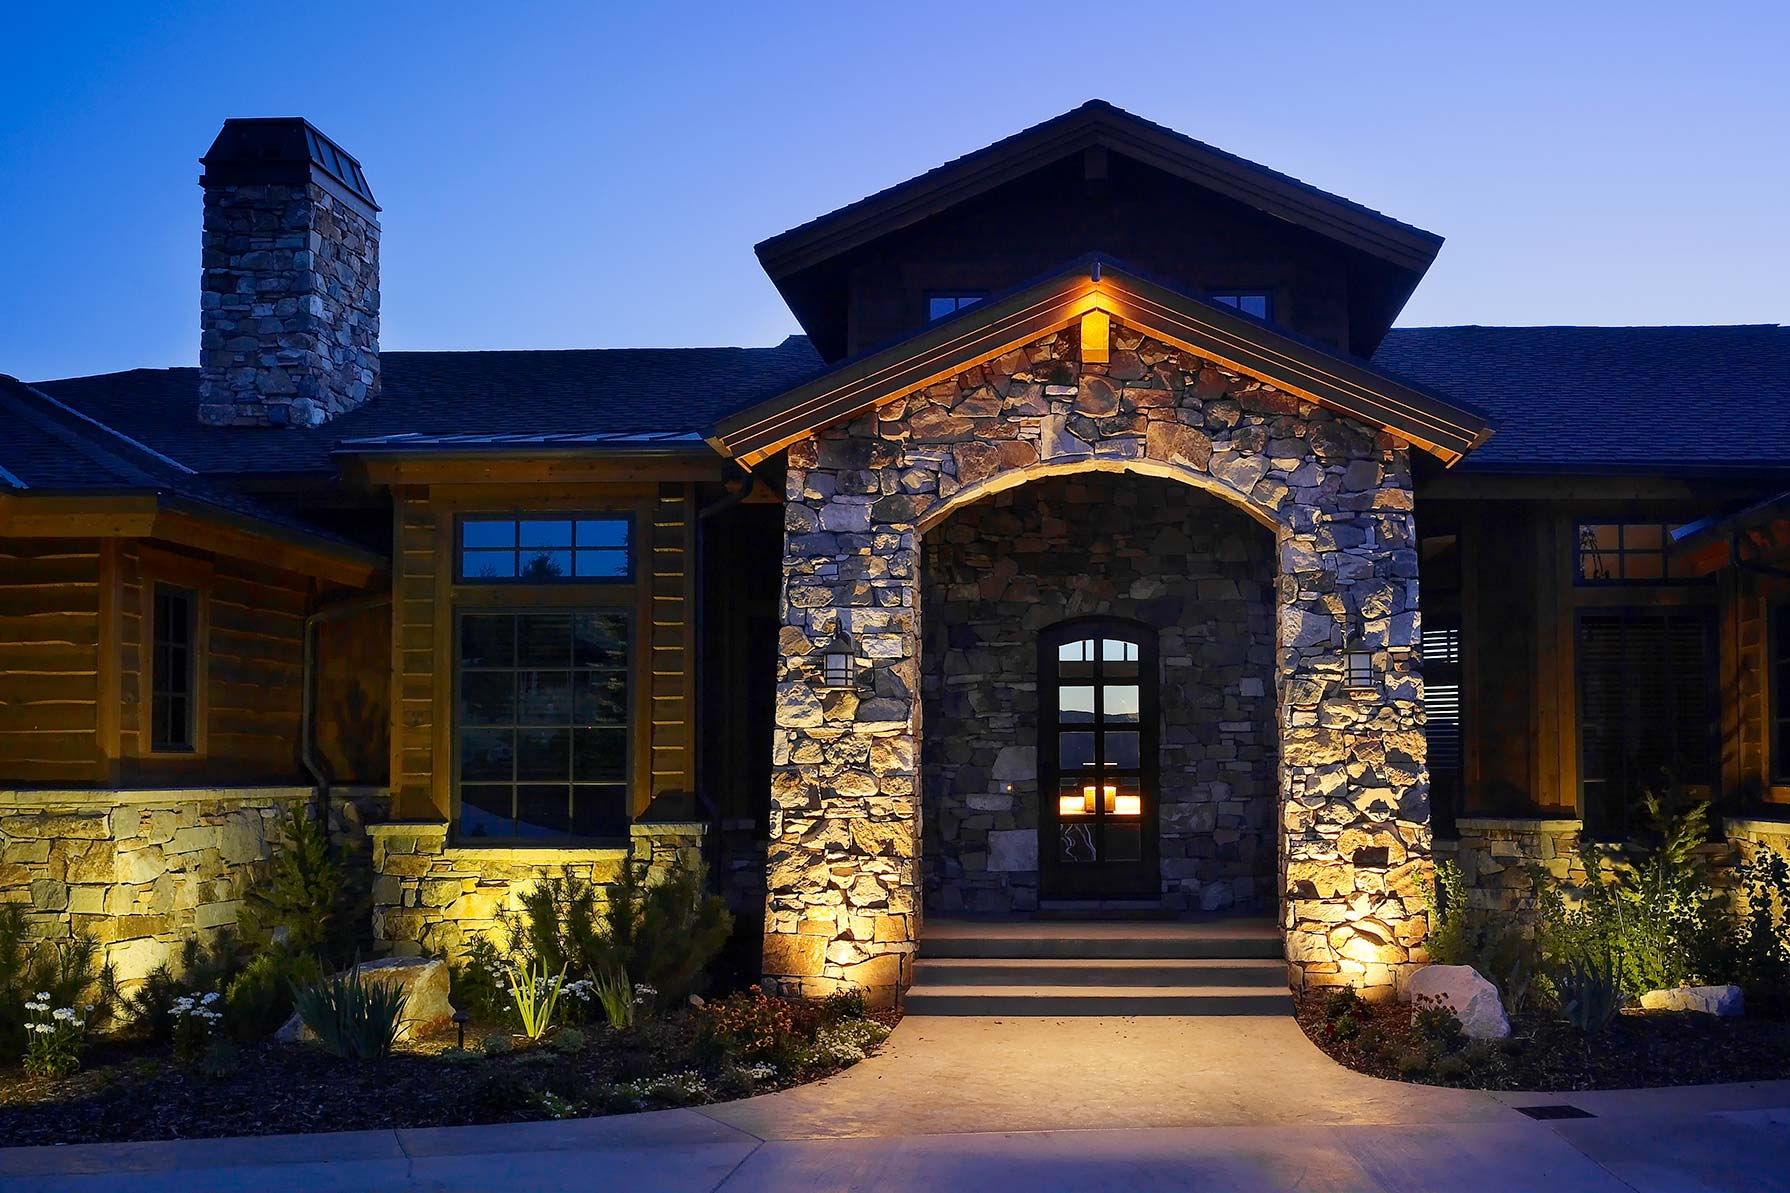 Downlighting Vs Uplighting When Do You Need Each In Your